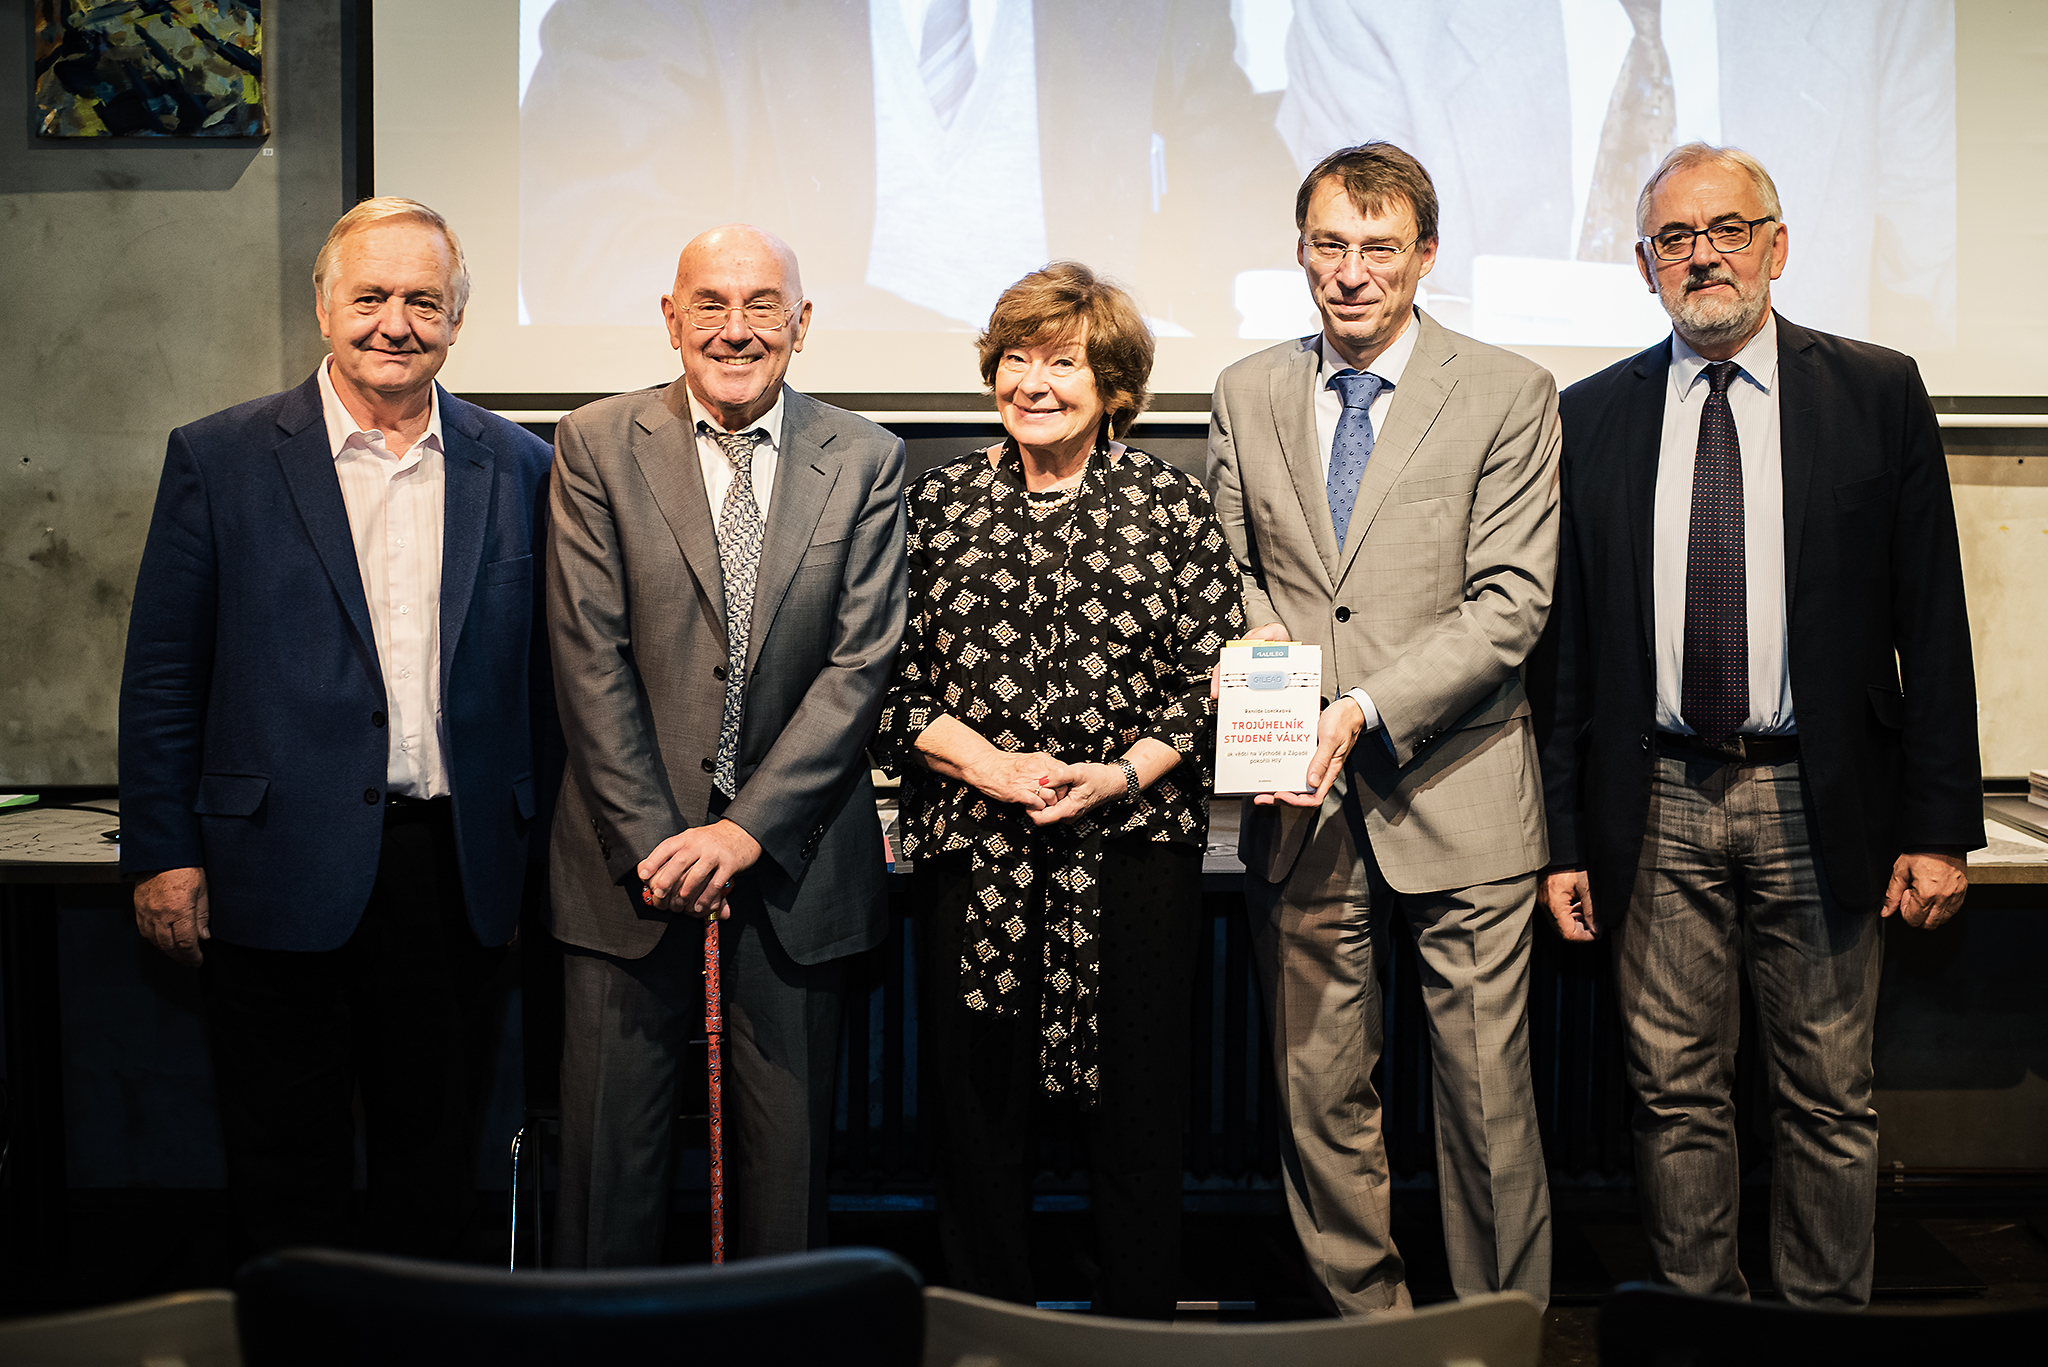 From the left: Dr. Zdeněk Havlas, former director of IOCB Prague; Prof. Erik De Clercq; author Renilde Loeckx; translator Jaroslav Kurfürst; and Prof. Libor Grubhoffer, director of the Biology Centre of the CAS